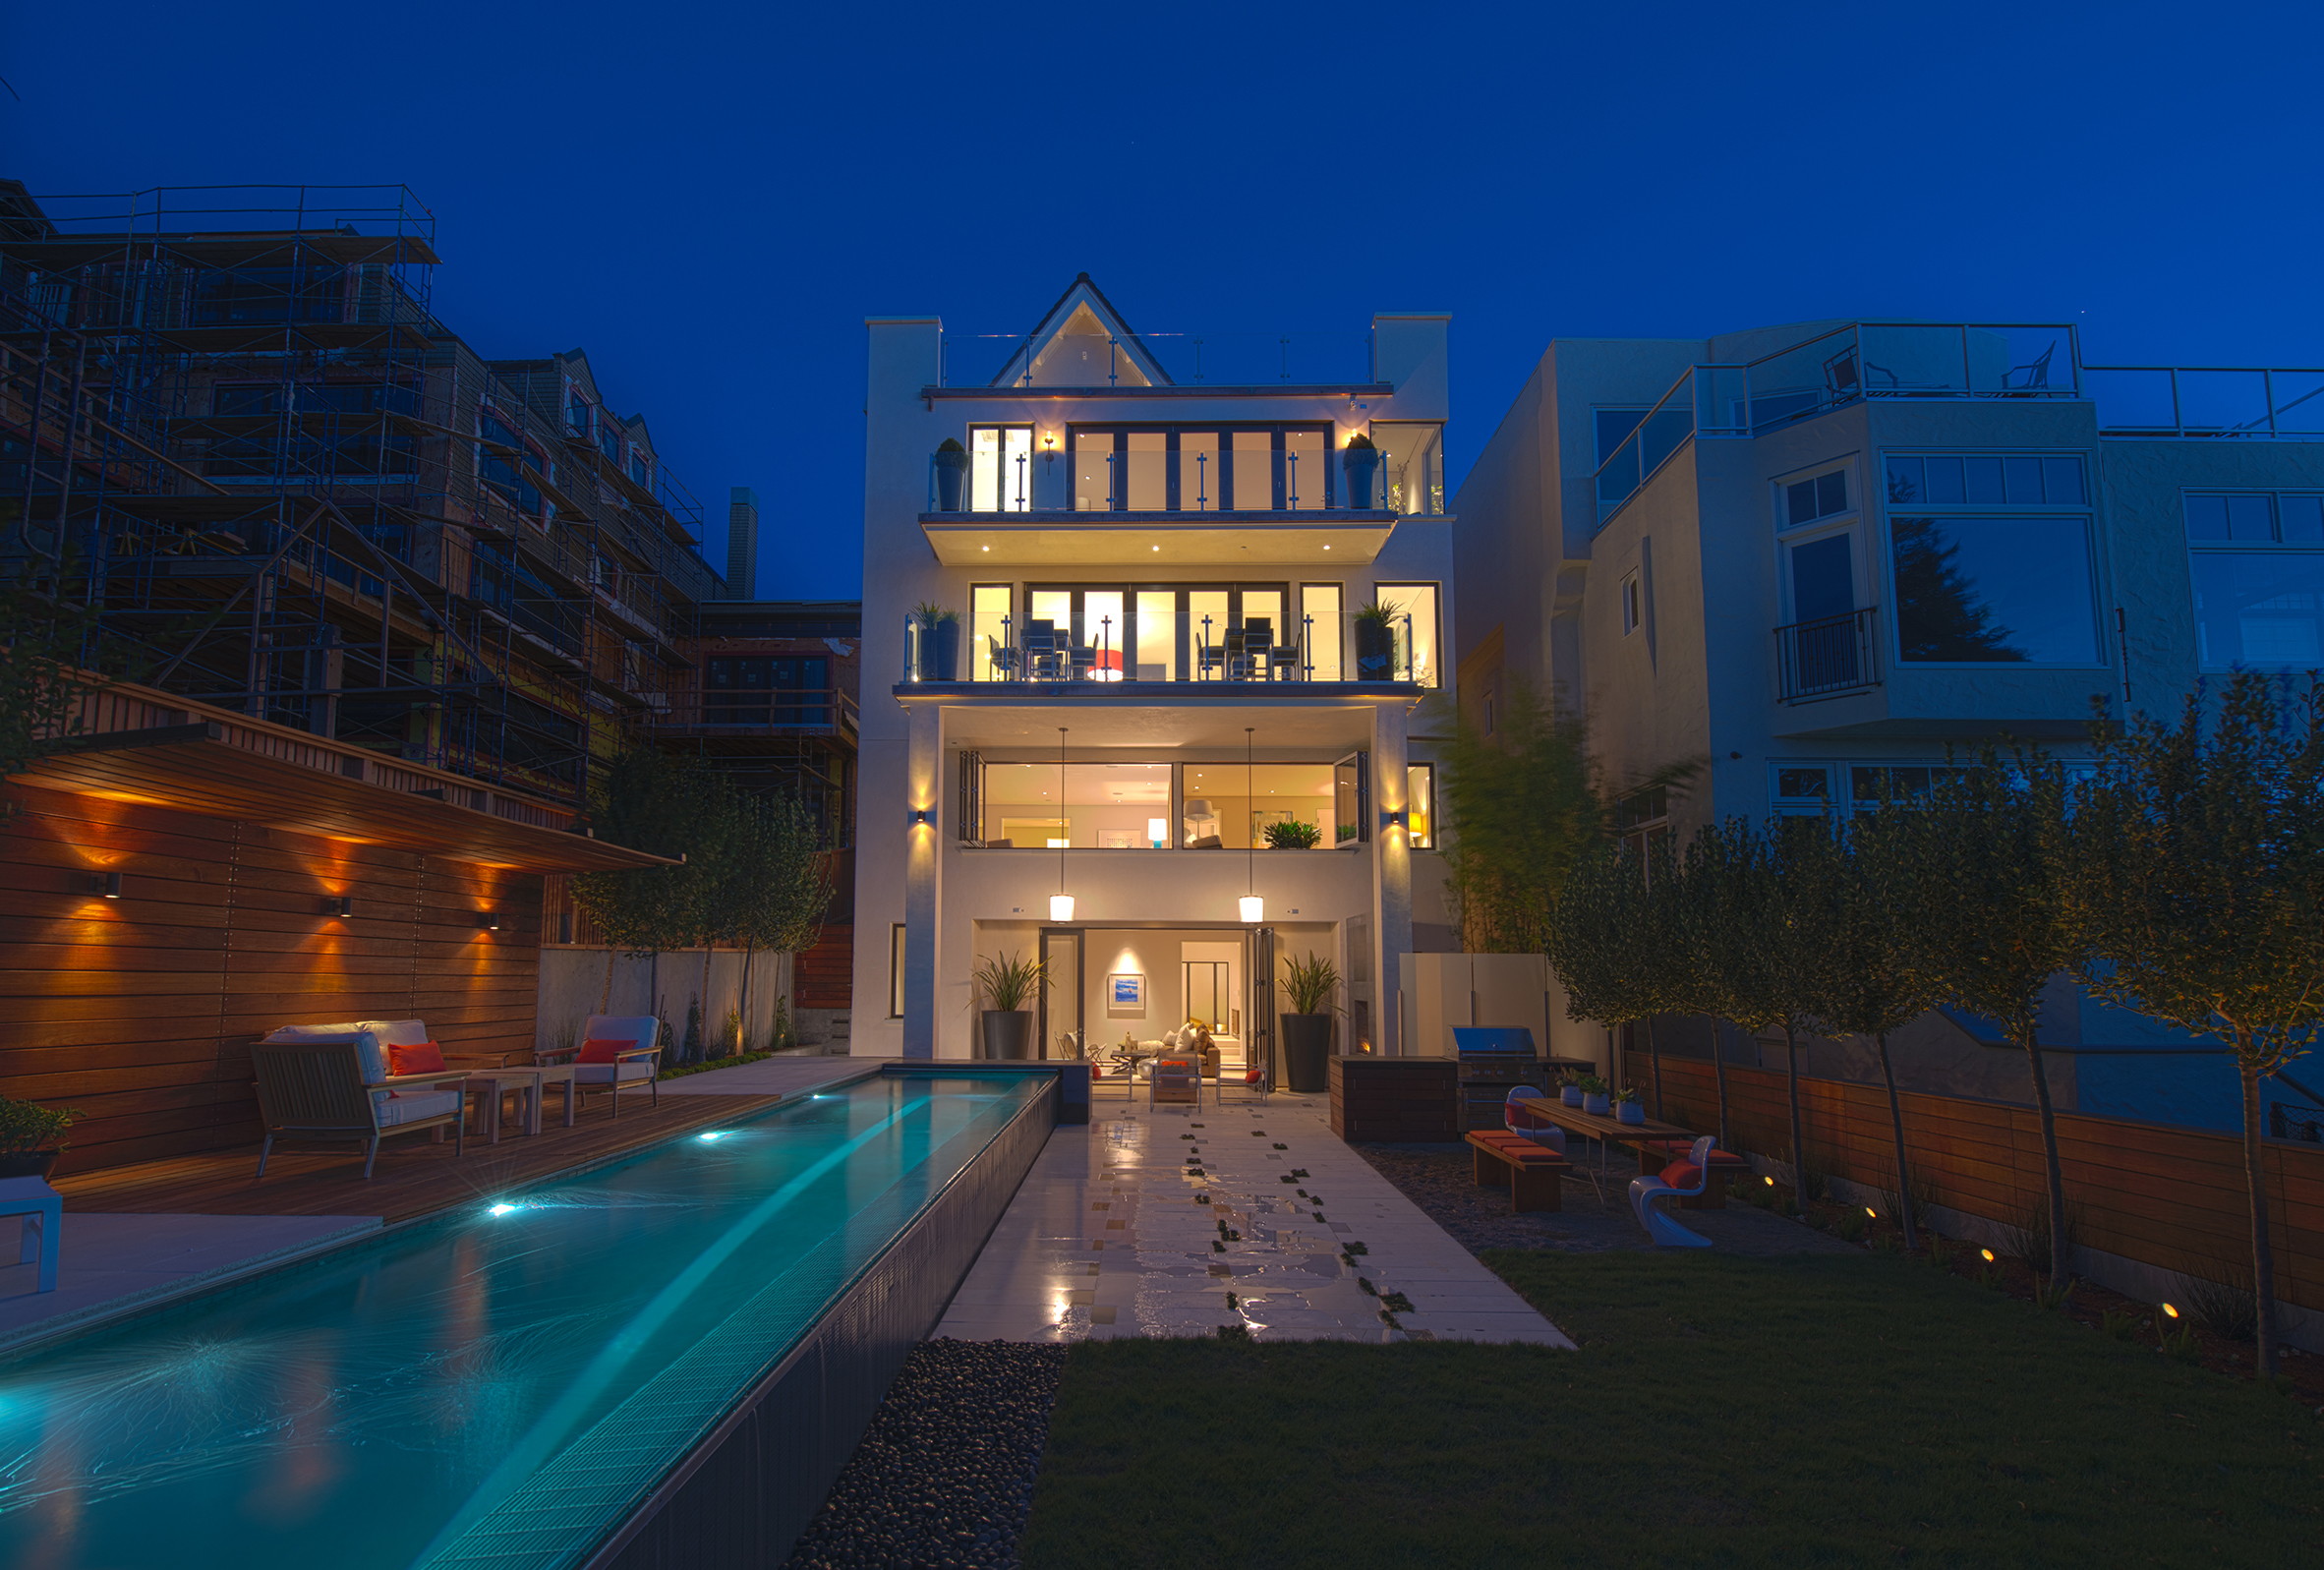 Vallejo Street Residence rear facade and garden at night